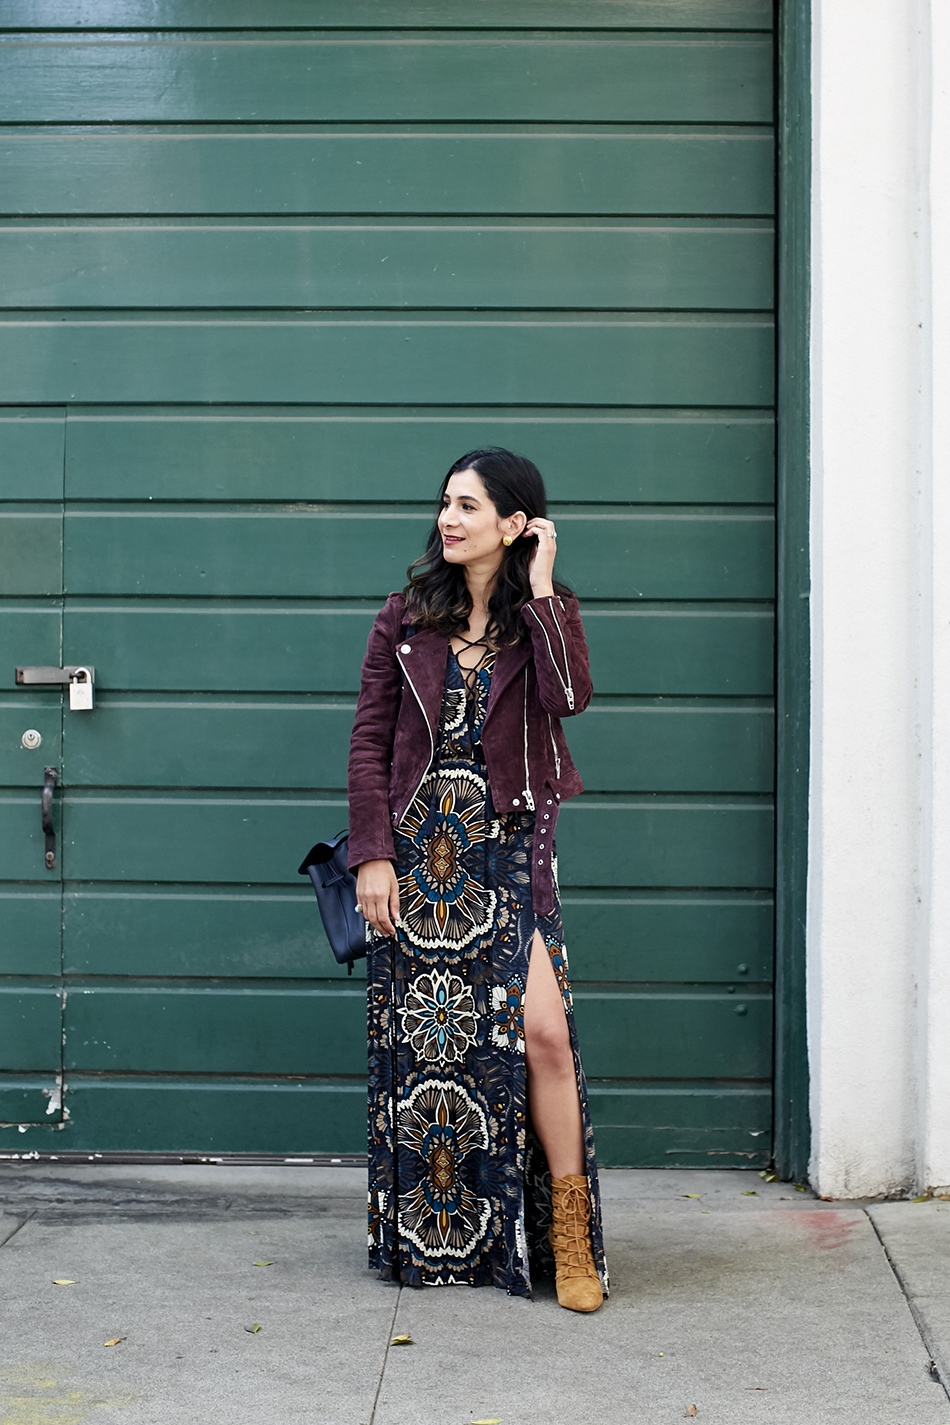 Fashion week Dress maxi in winter how to wear for lady